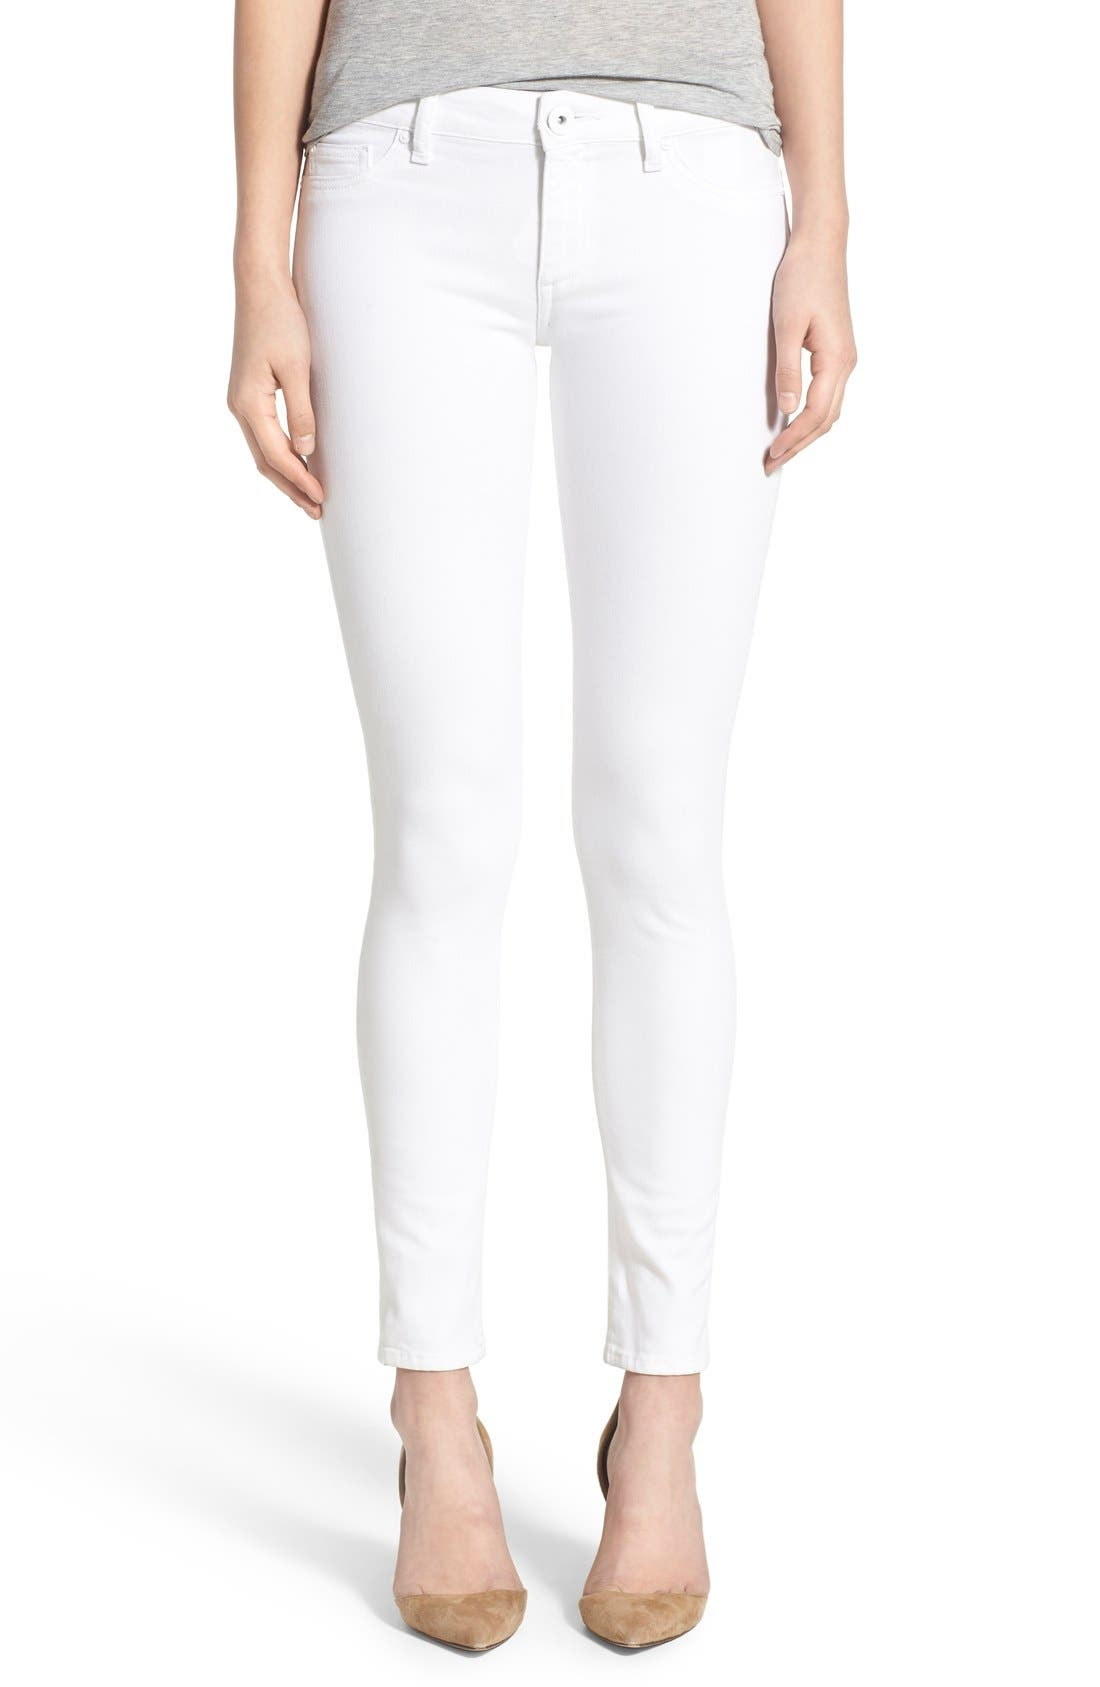 'Emma' Power Legging Jeans,                         Main,                         color, Porcelain